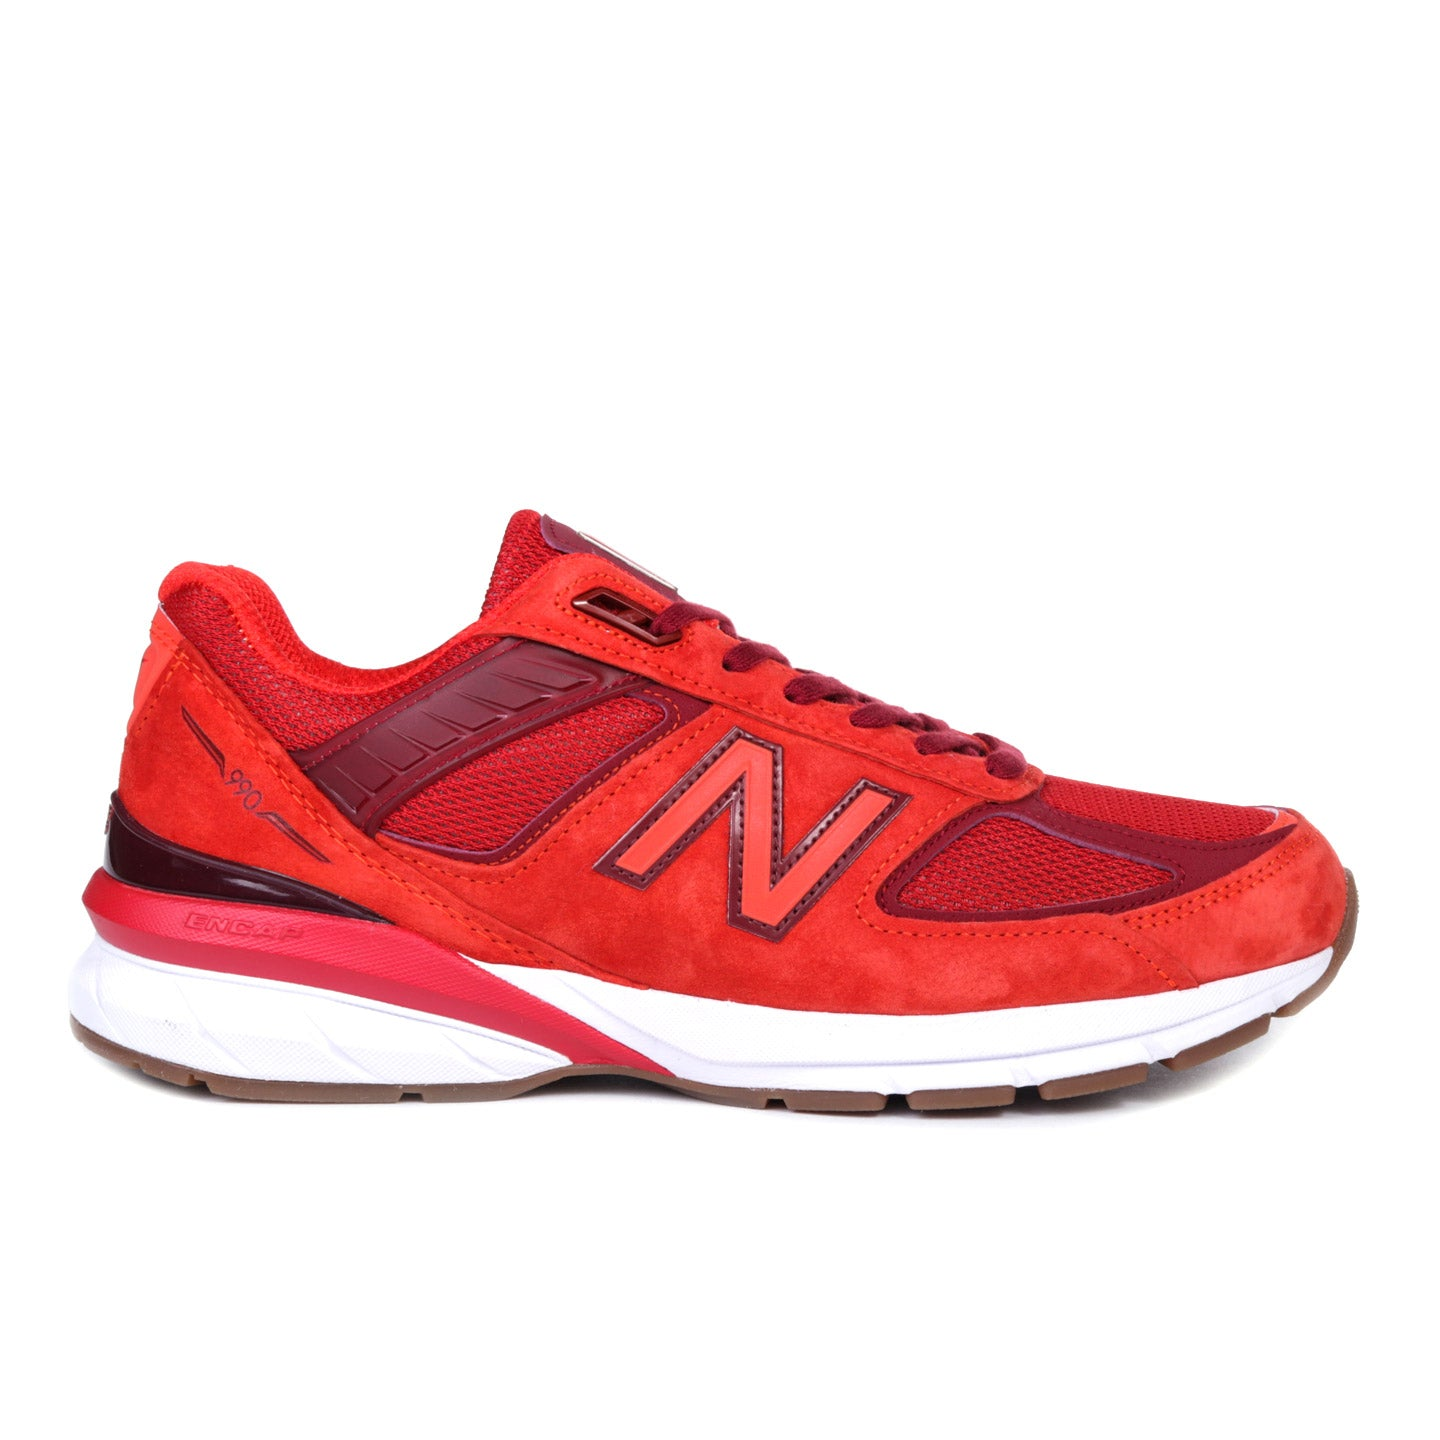 NEW BALANCE 990V5 MIUSA HOT SAUCE